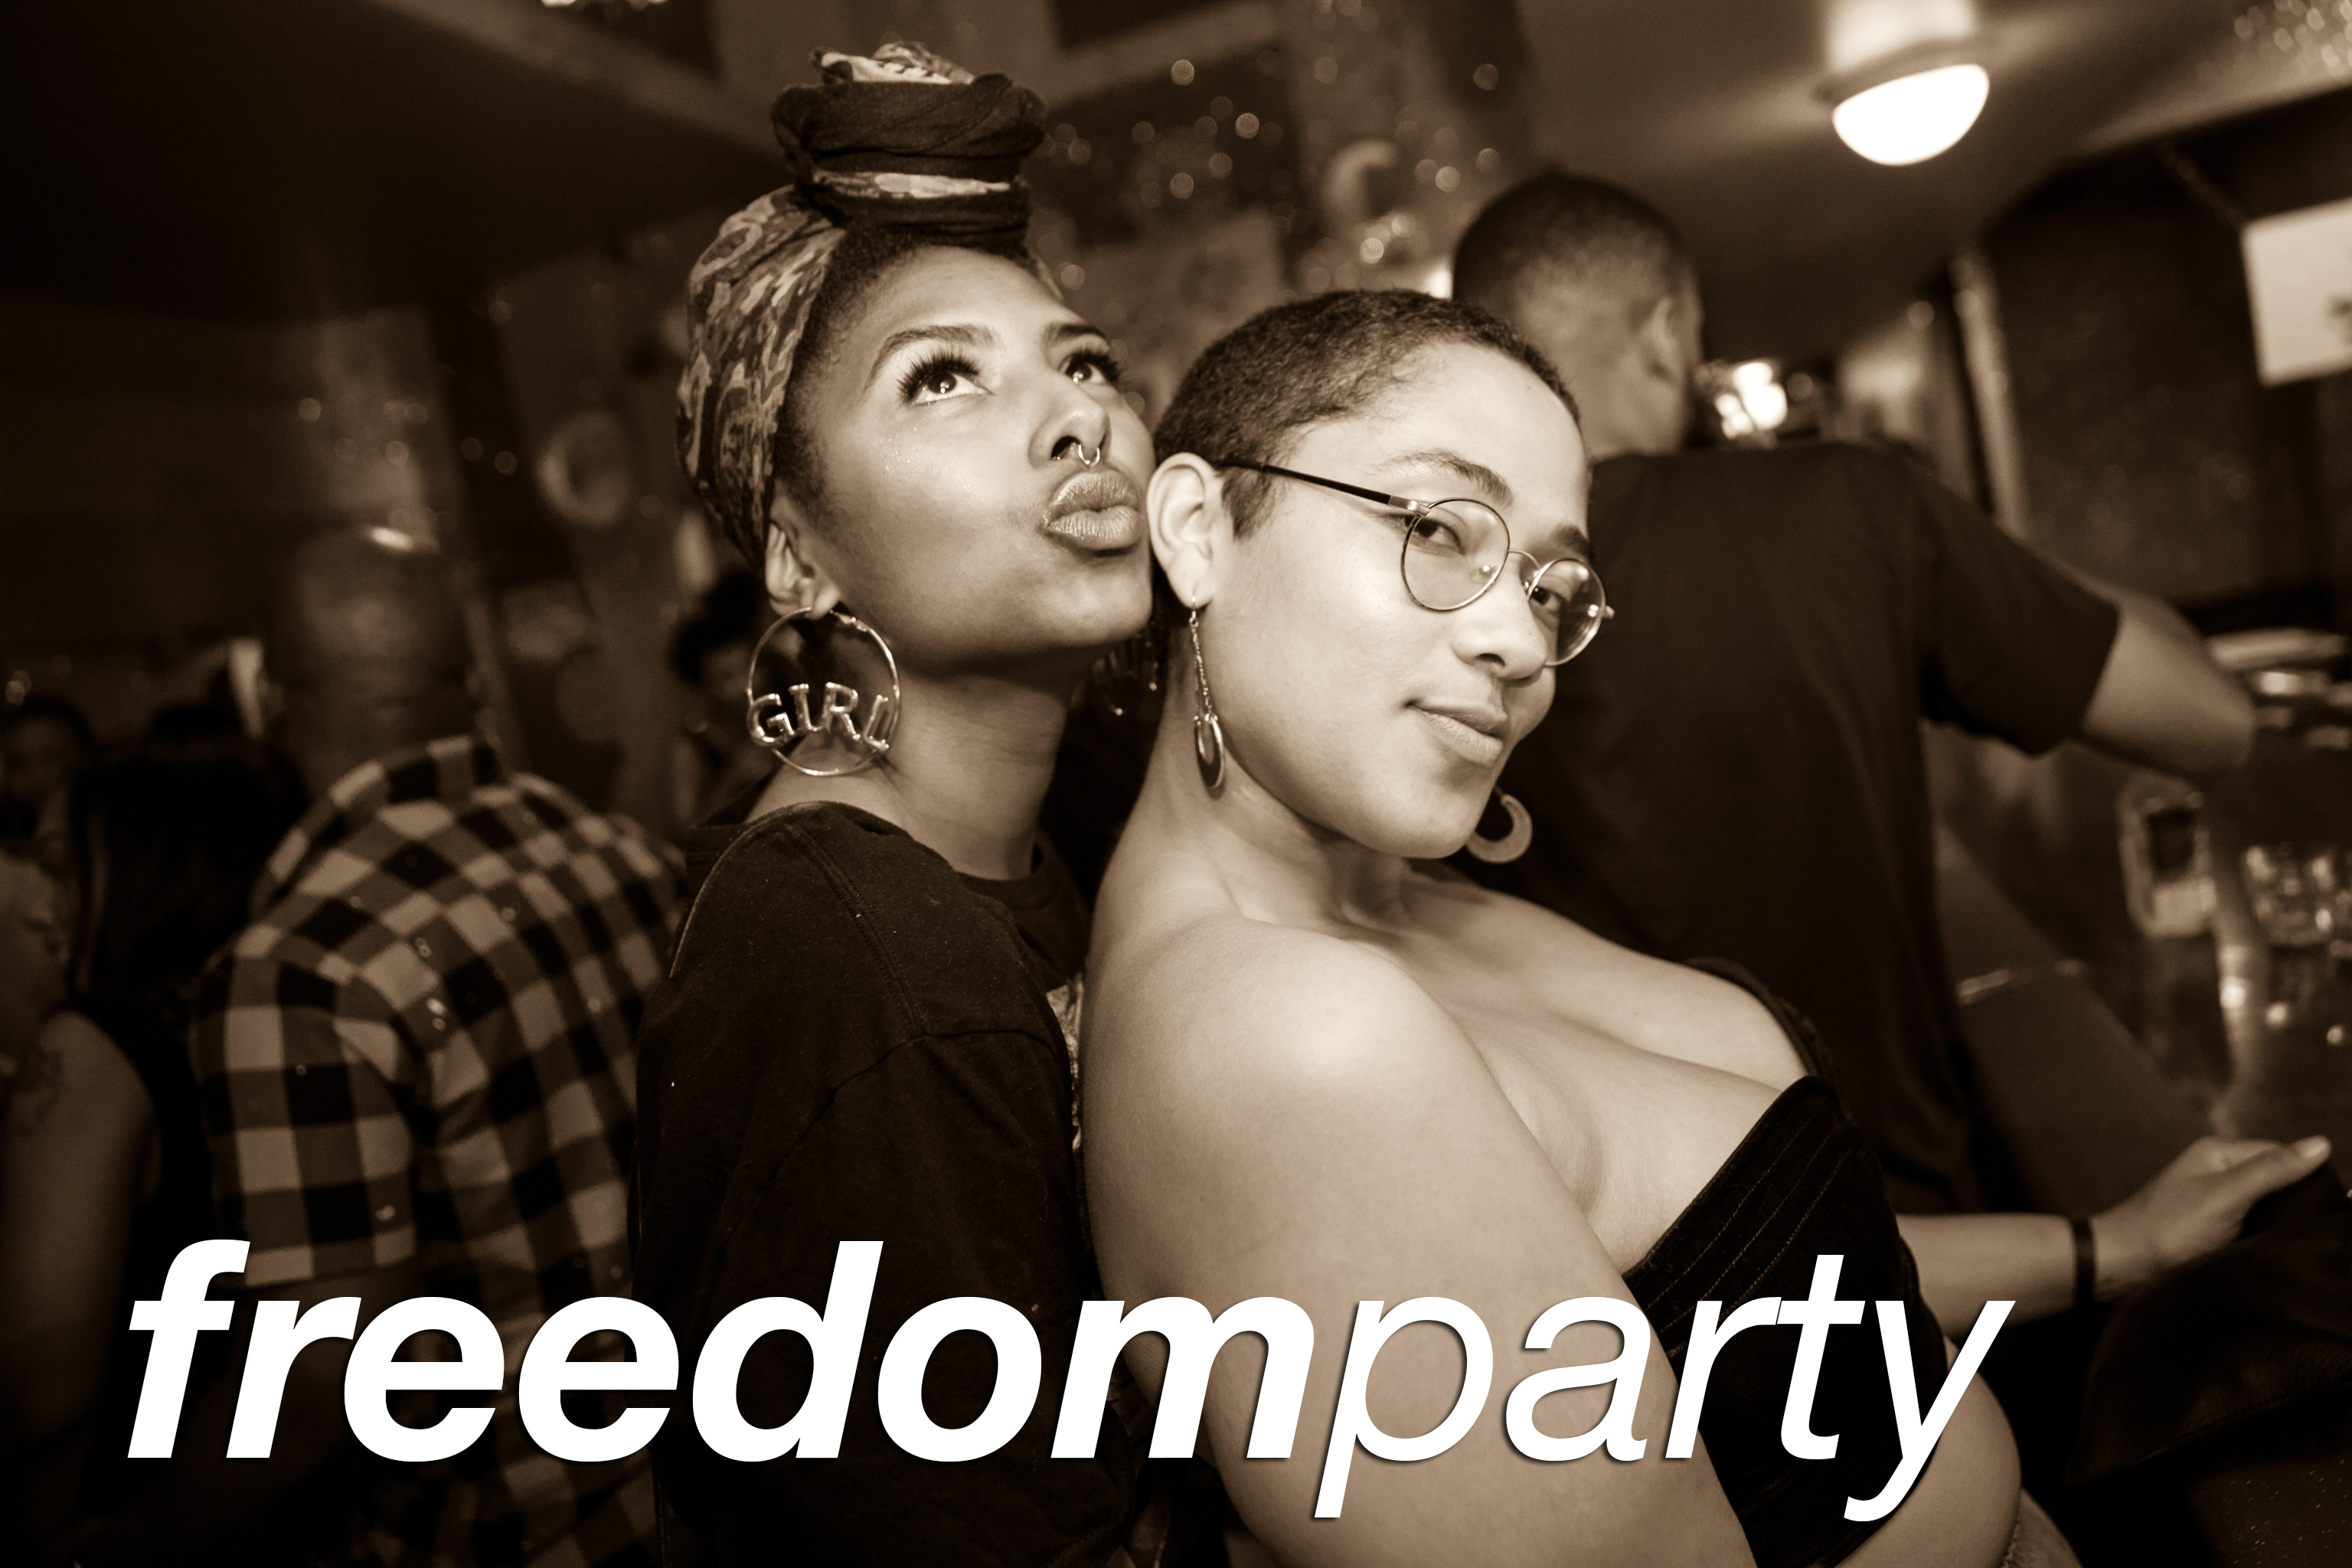 party pics from freedom party at beauty bar, sepetember 2017